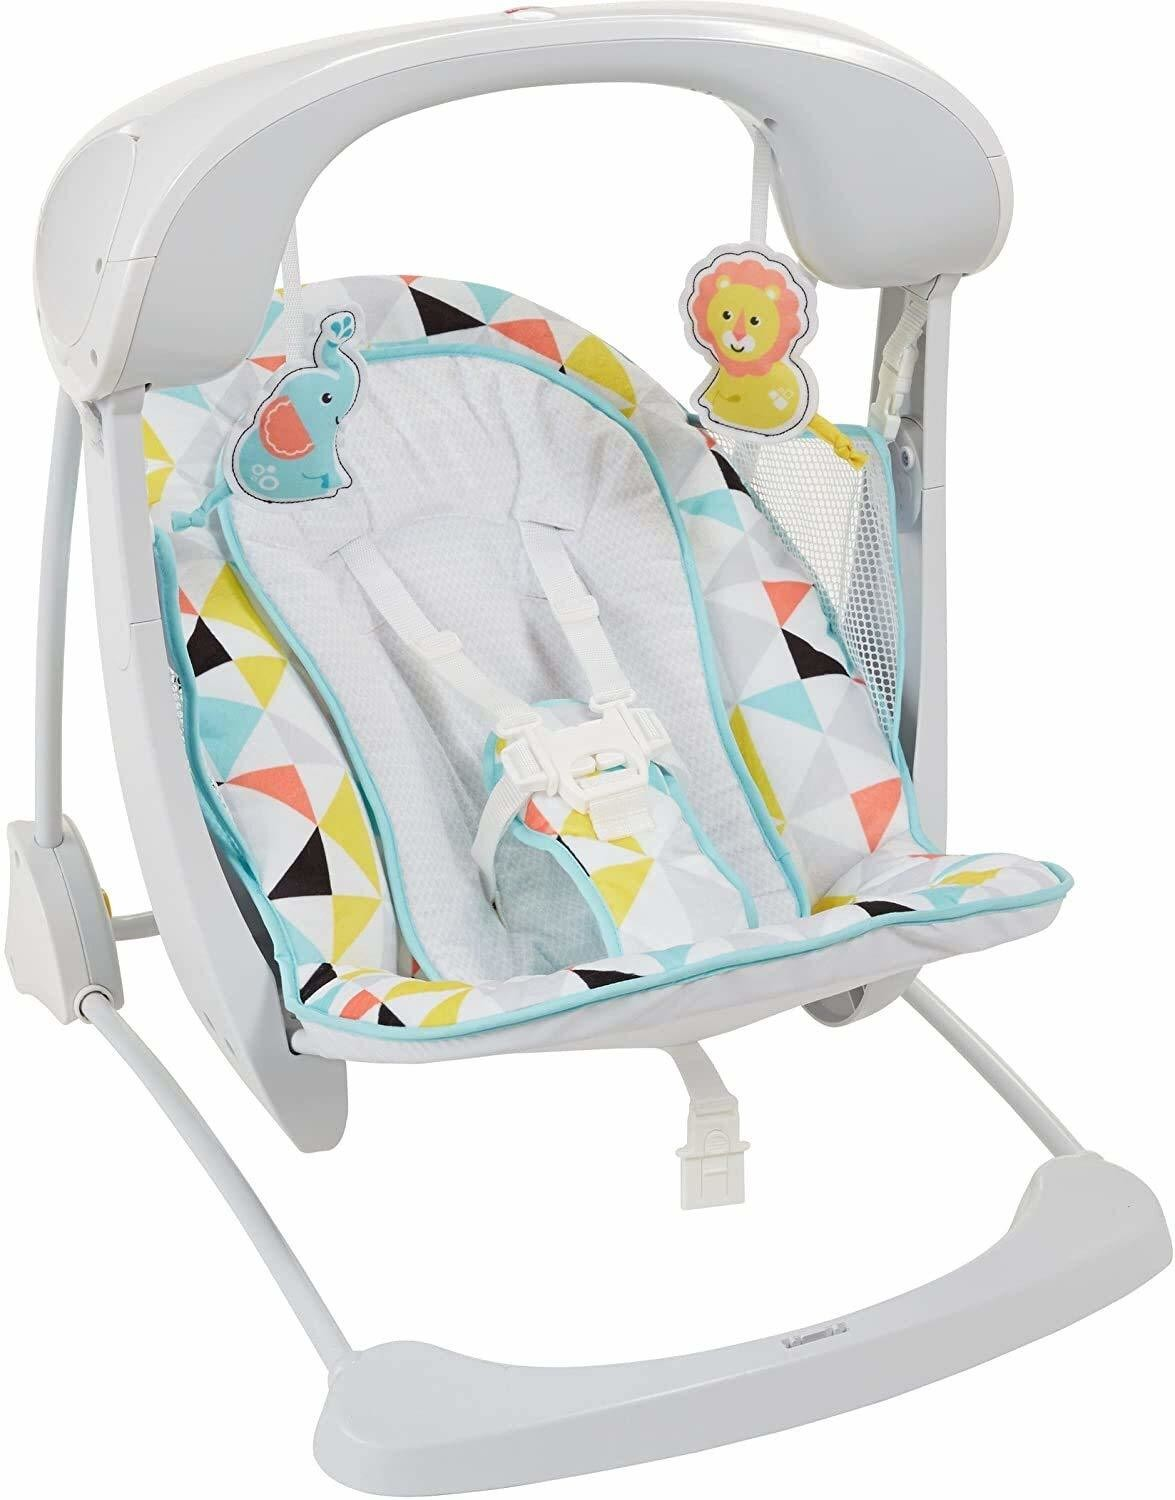 The Best Baby Swings Of 2021 Shop Mabel Moxie Mabel Moxie